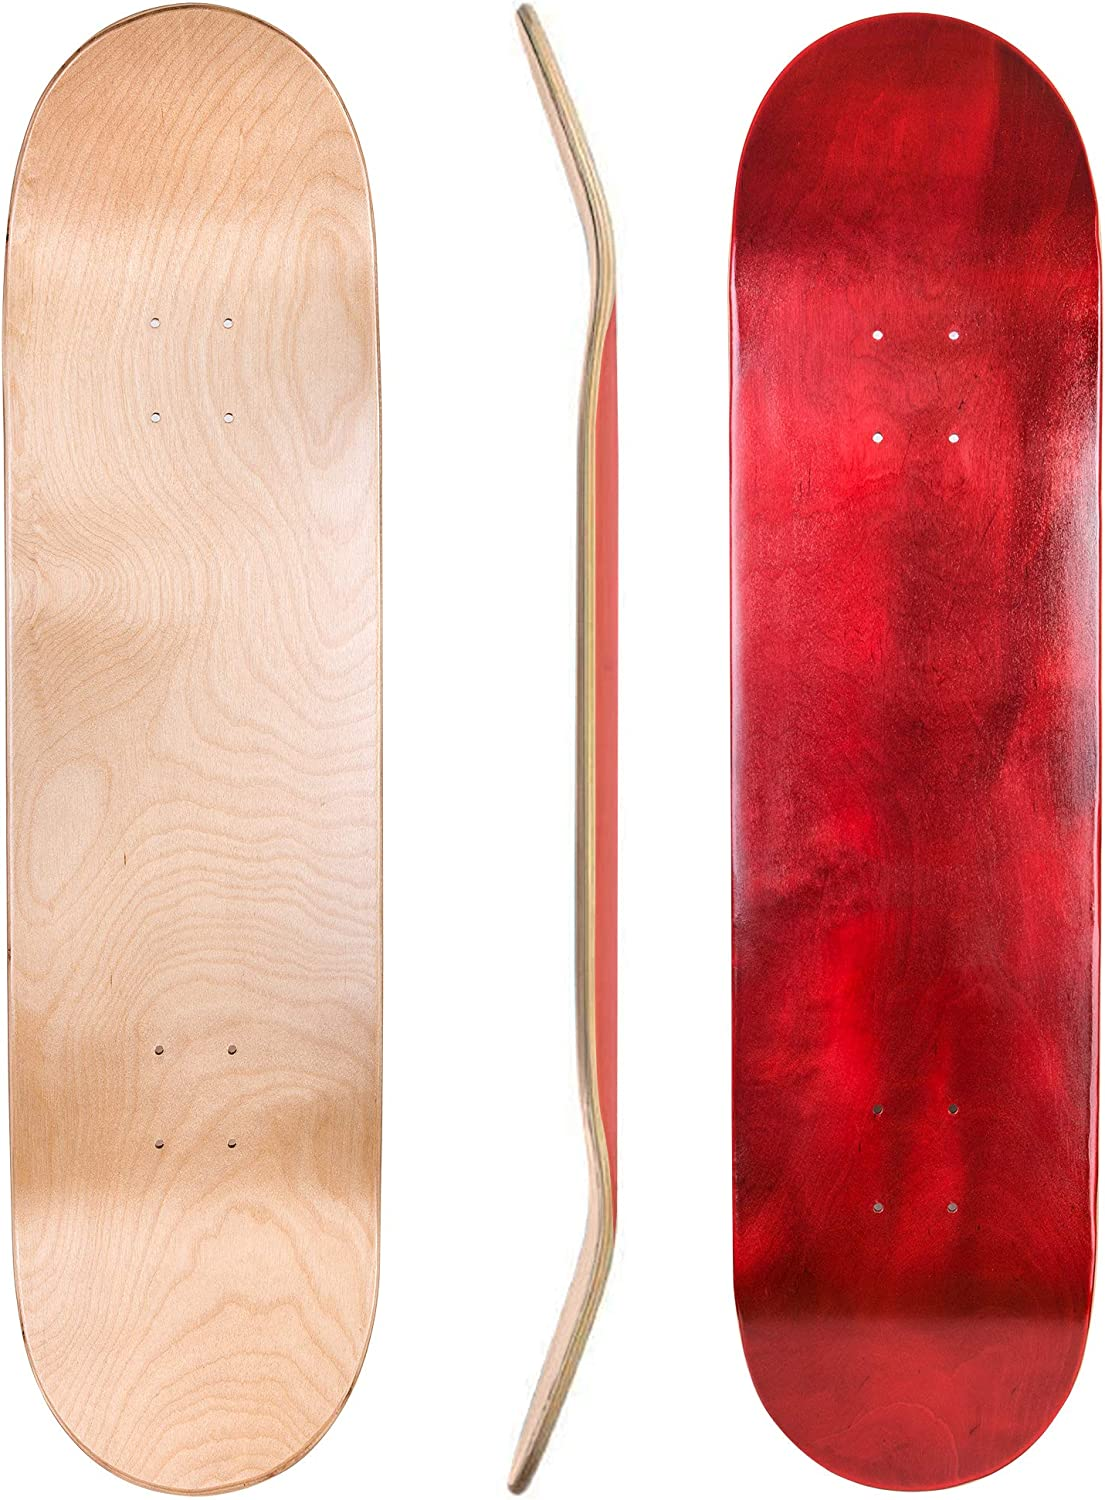 8.0 8.25 and 8.5 Inch Two Pack Combinations Cal 7 Blank Maple Skateboard Decks 7.75